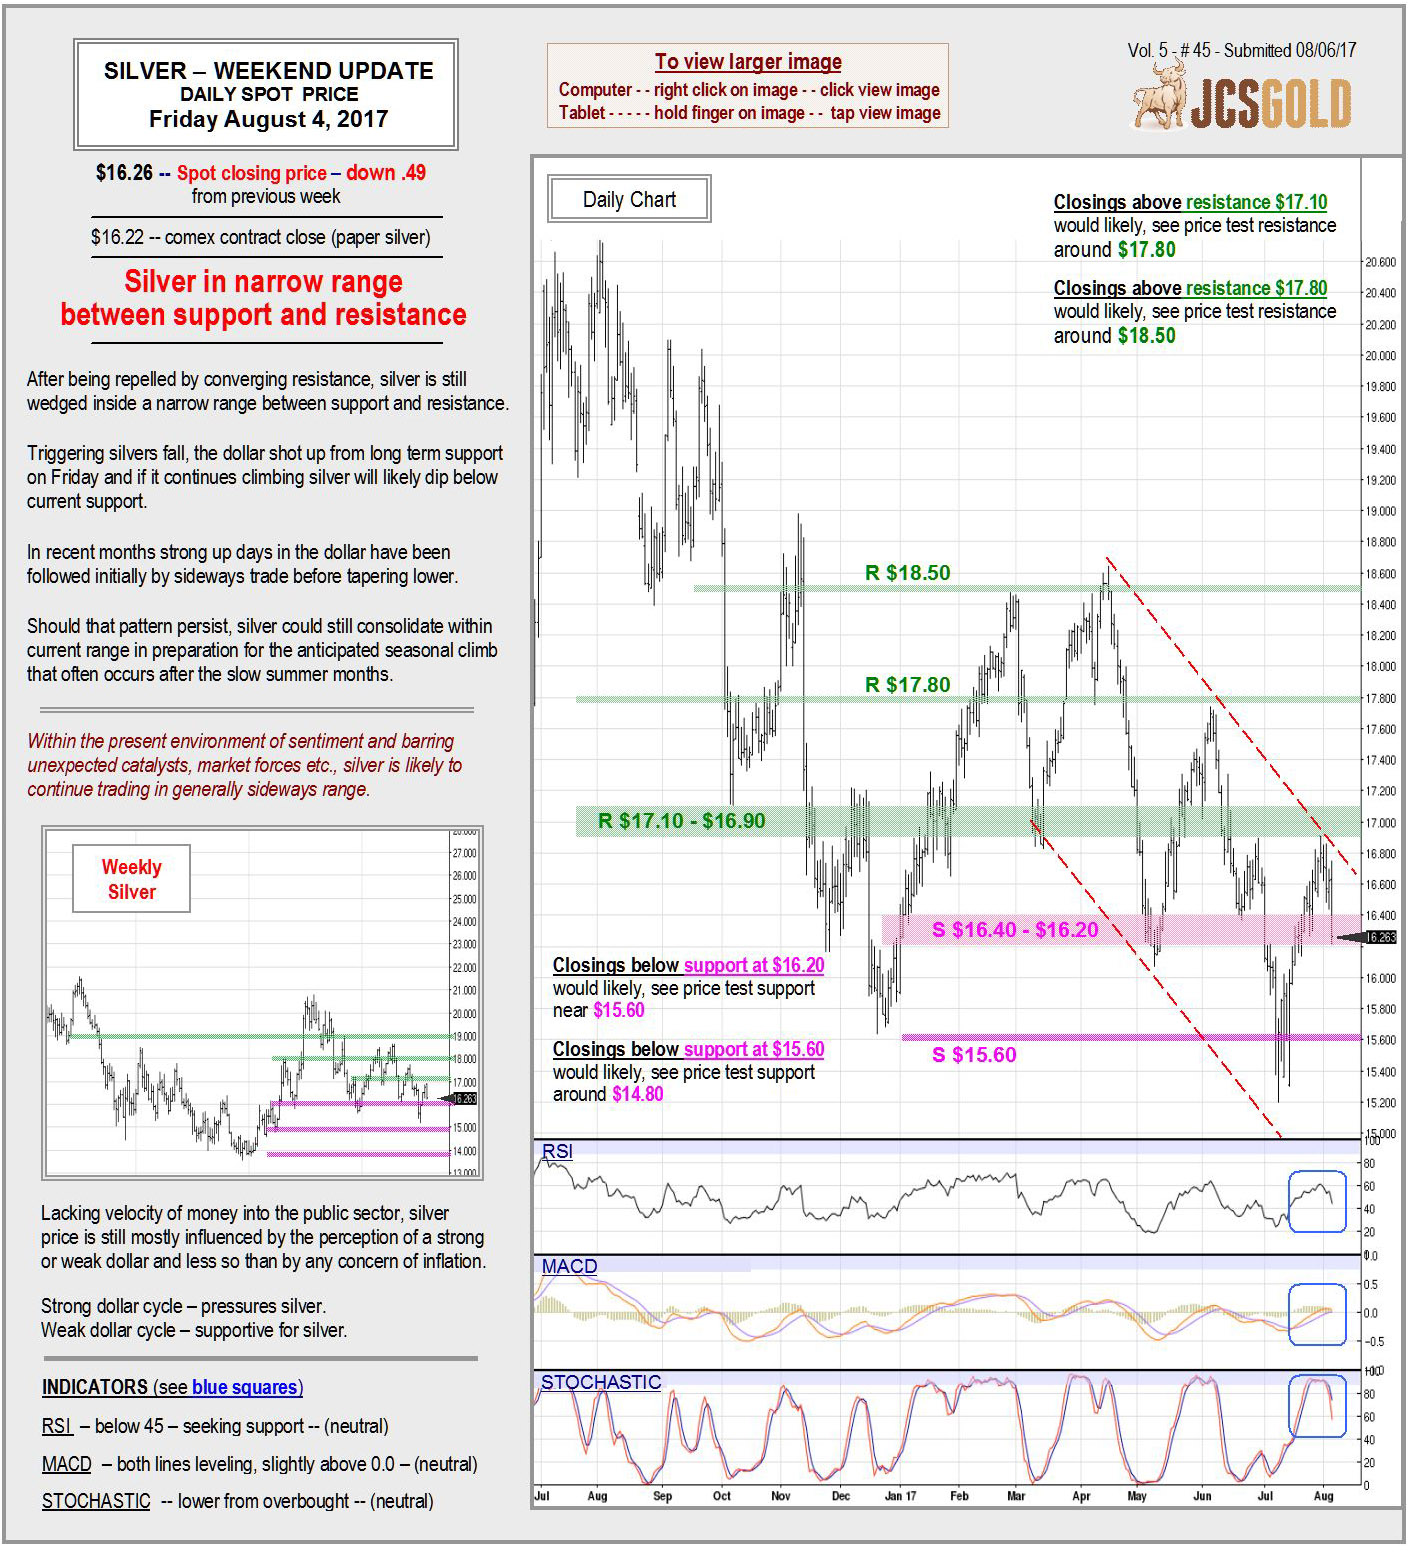 Aug 4, 2017 Chart & Commentary